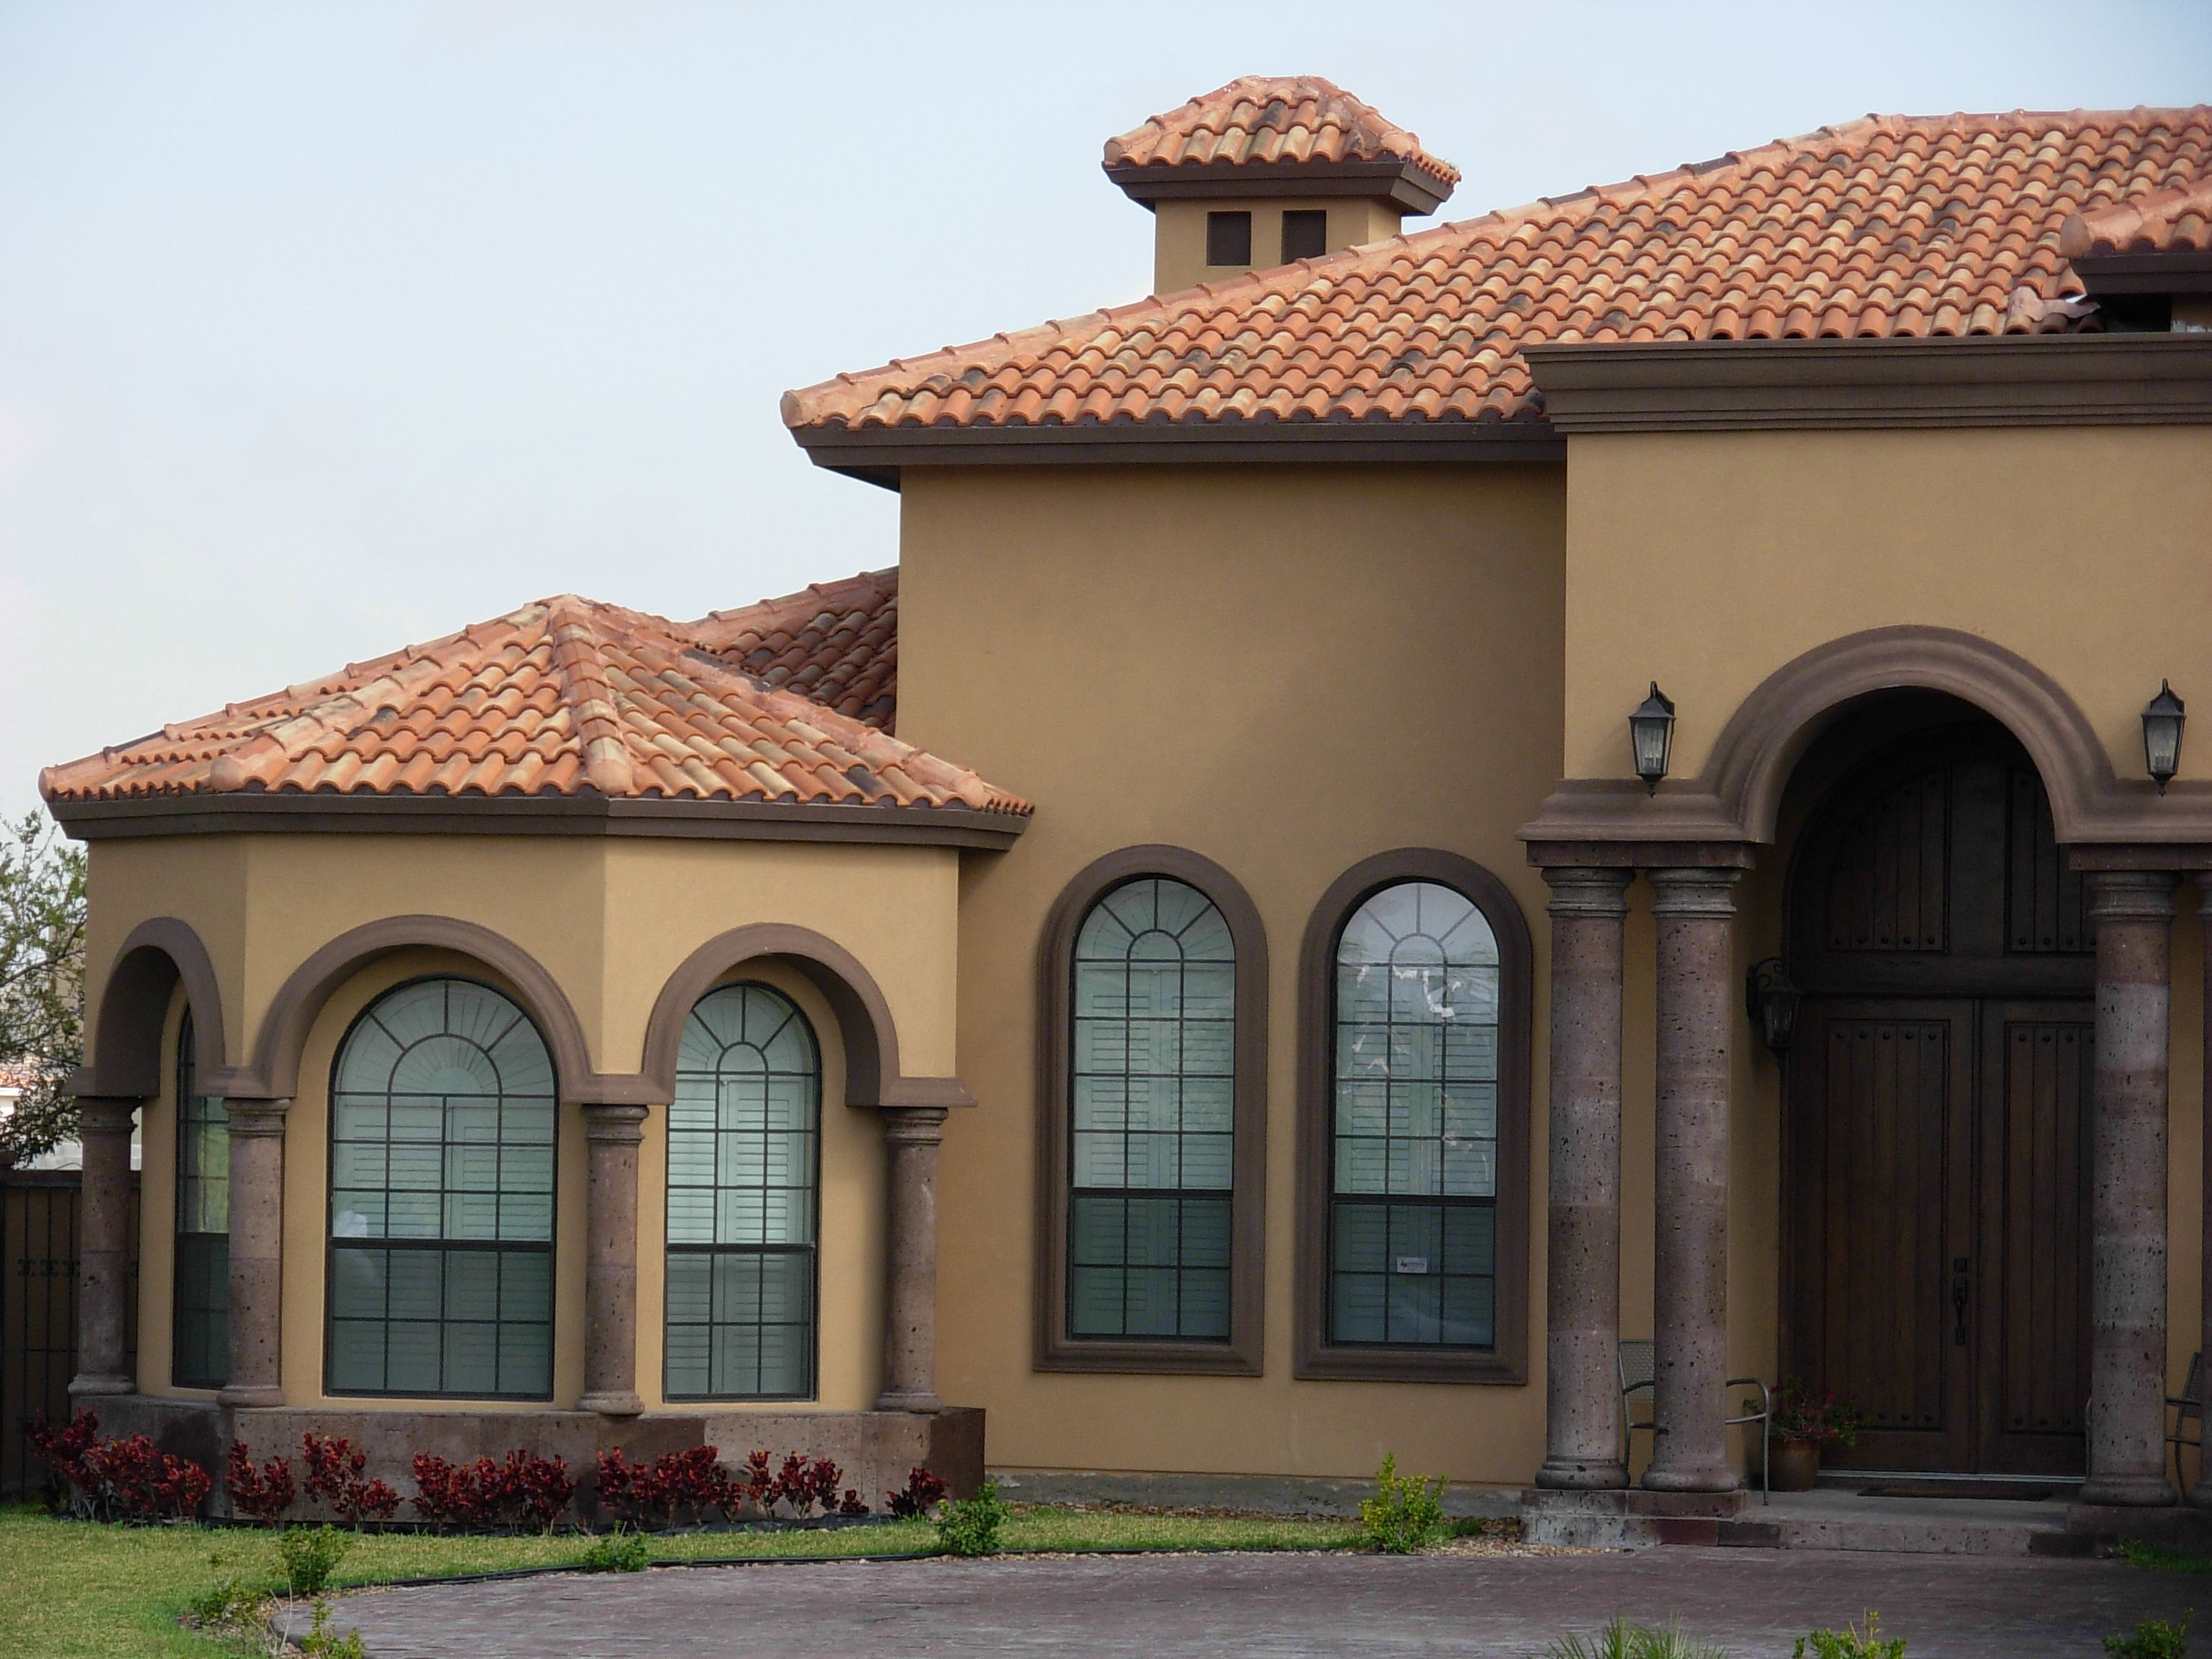 Spanish Bentsen Lake Roof Tile House Exterior Modern Roofing Roof Architecture